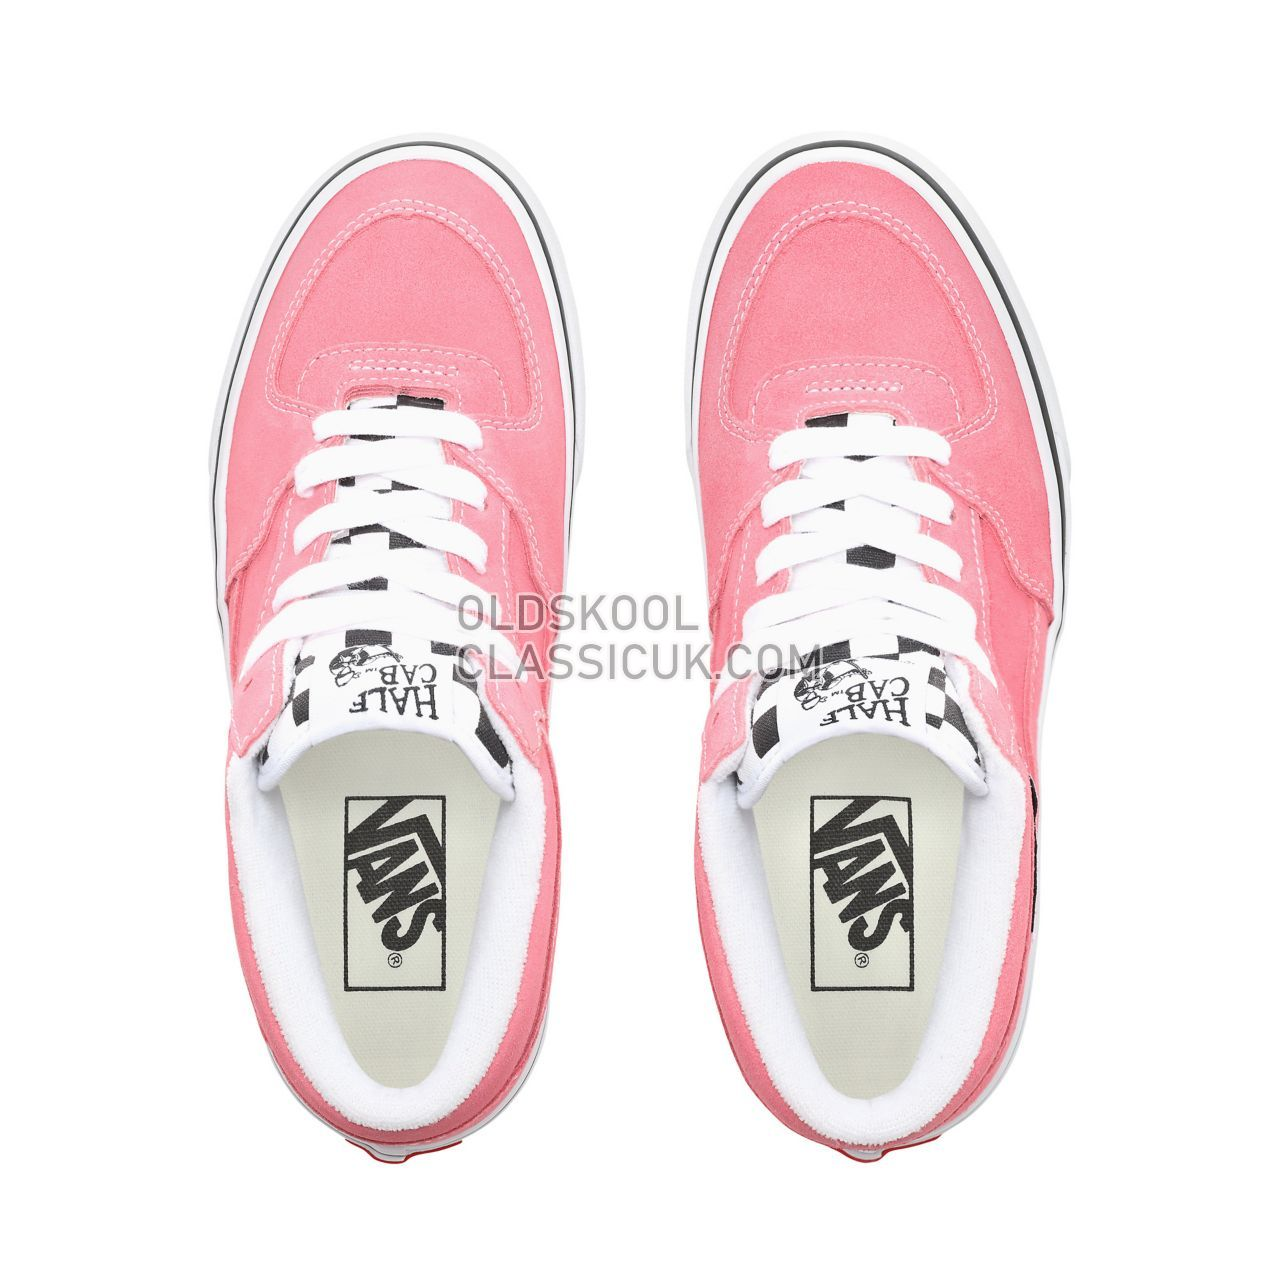 Vans Suede Half Cab Sneakers Womens (Suede) Strawberry Pink/True White VN0A348EVQ3 Shoes